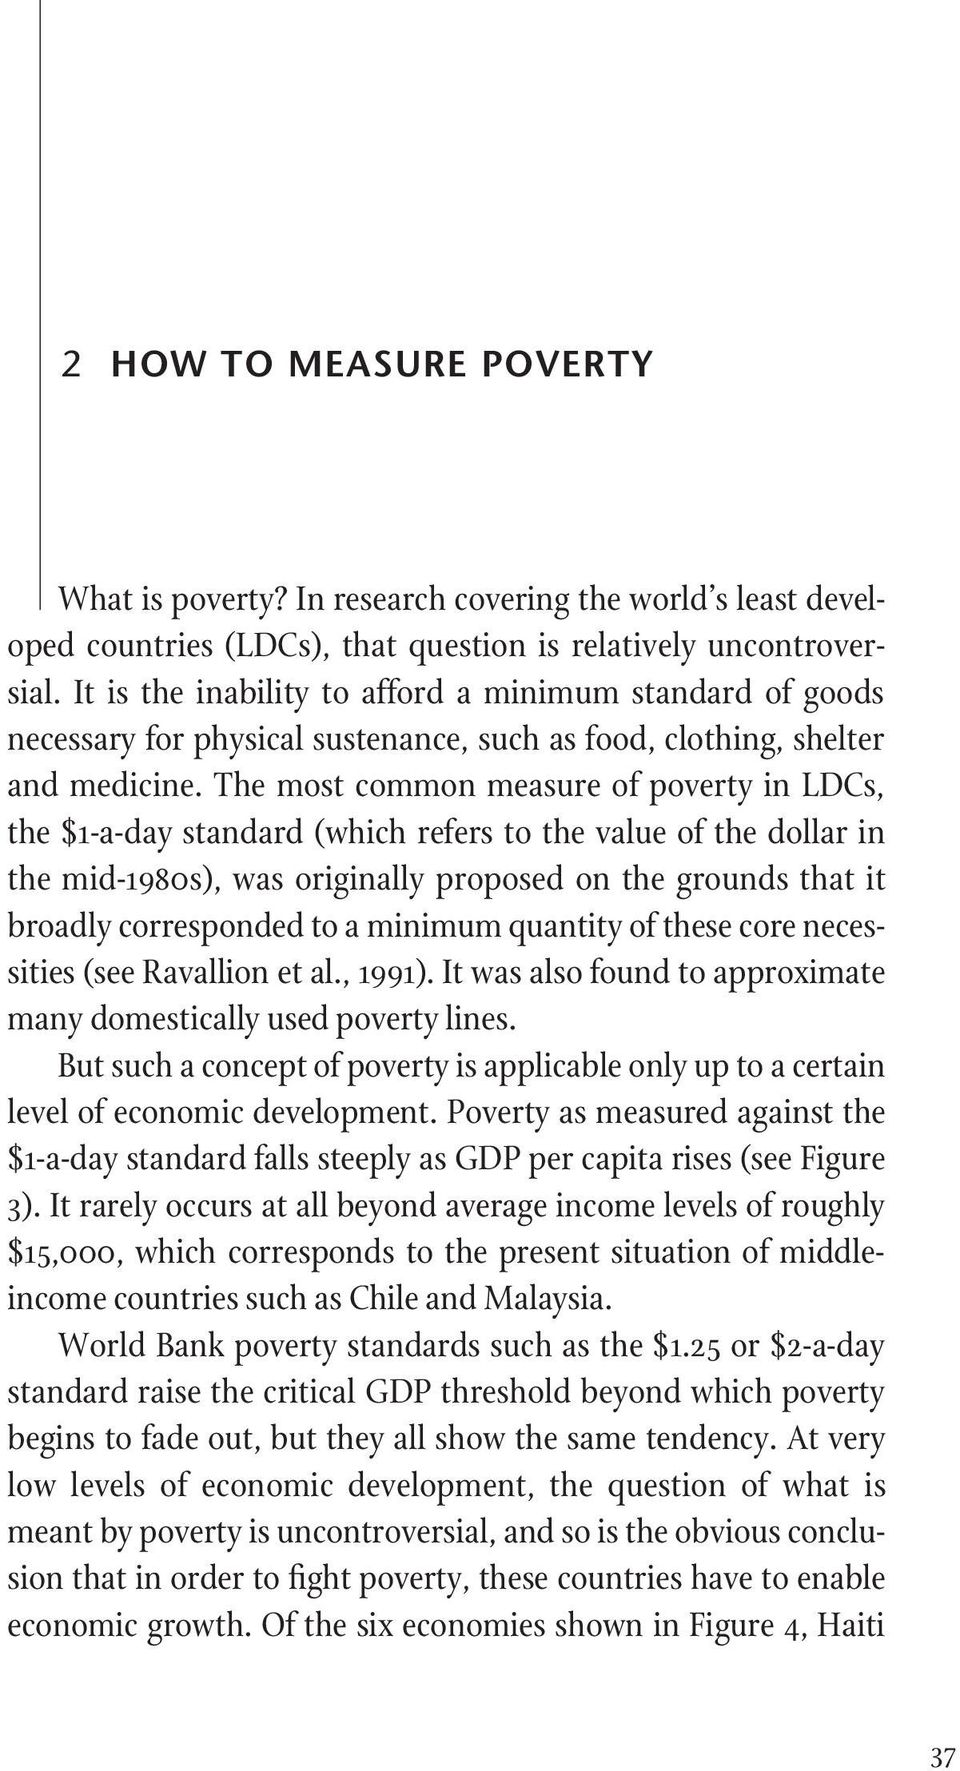 The most common measure of poverty in LDCs, the $1-a-day standard (which refers to the value of the dollar in the mid-1980s), was originally proposed on the grounds that it broadly corresponded to a